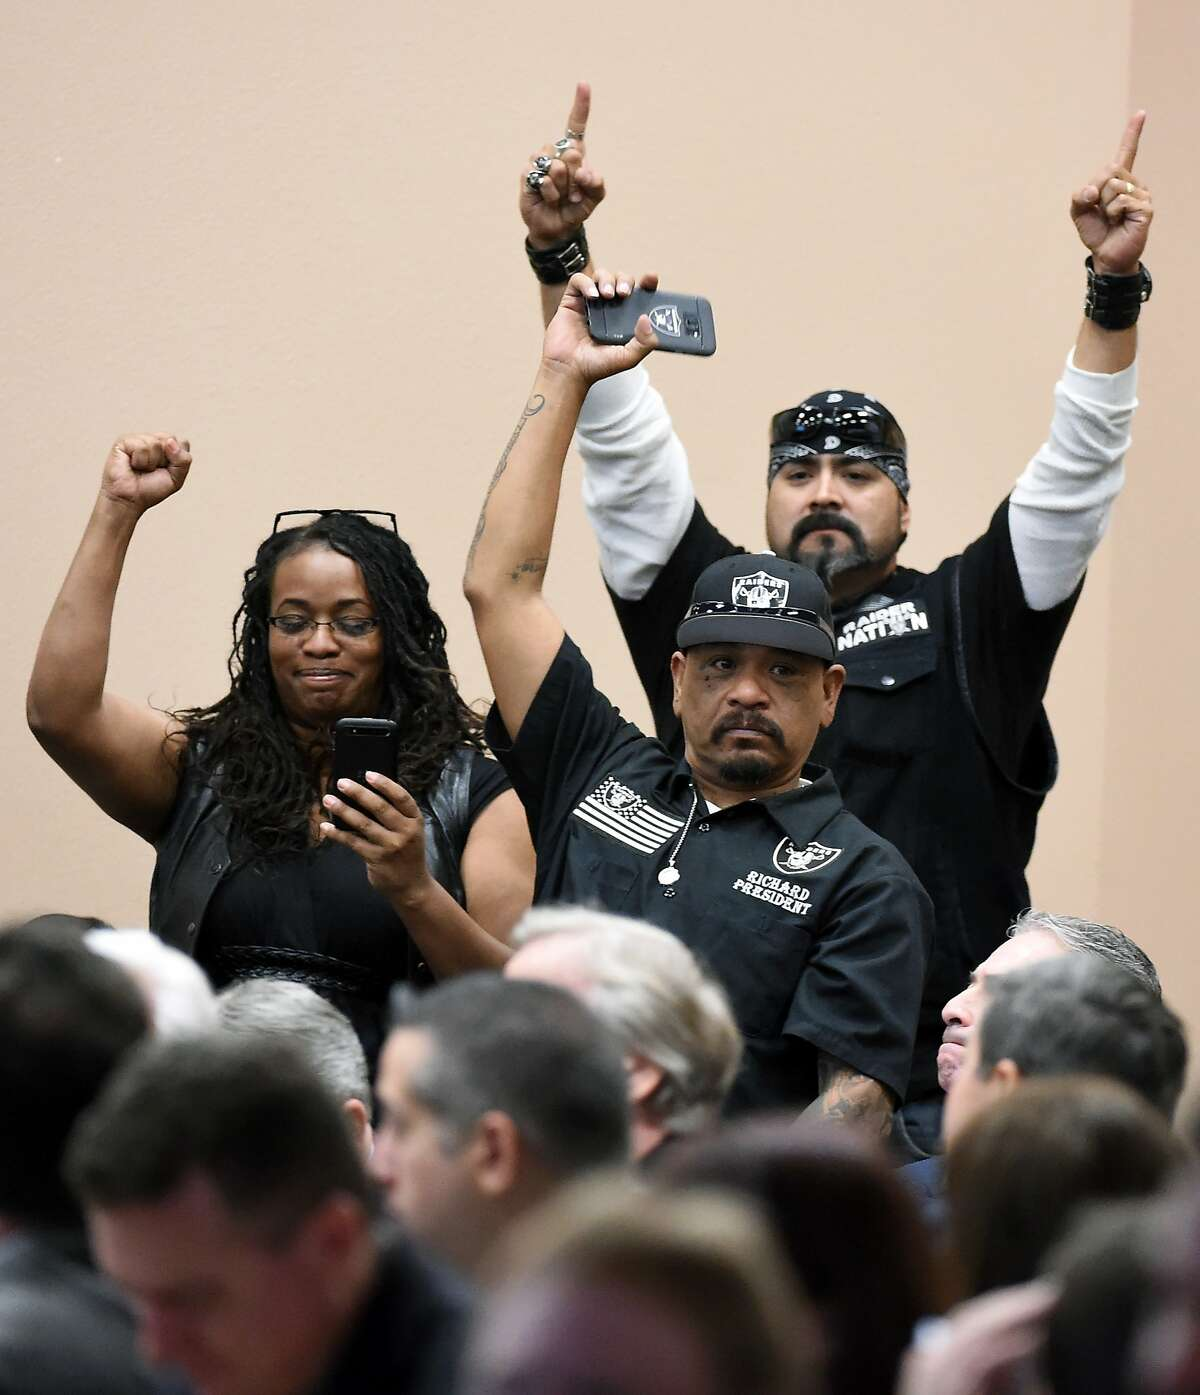 LAS VEGAS, NV - APRIL 28: Oakland Raiders fans react after being acknowledged during a Southern Nevada Tourism Infrastructure Committee meeting at UNLV attended by Raiders owner Mark Davis on April 28, 2016 in Las Vegas, Nevada. Davis told the committee he is willing to spend USD 500,000 as part of a deal to move the team to Las Vegas if a proposed USD 1.3 billion, 65,000-seat domed stadium is built by casino magnate Sheldon Adelson's Las Vegas Sands Corp. and real estate agency Majestic Realty, possibly on a vacant 42-acre lot a few blocks east of the Las Vegas Strip recently purchased by UNLV. (Photo by Ethan Miller/Getty Images)